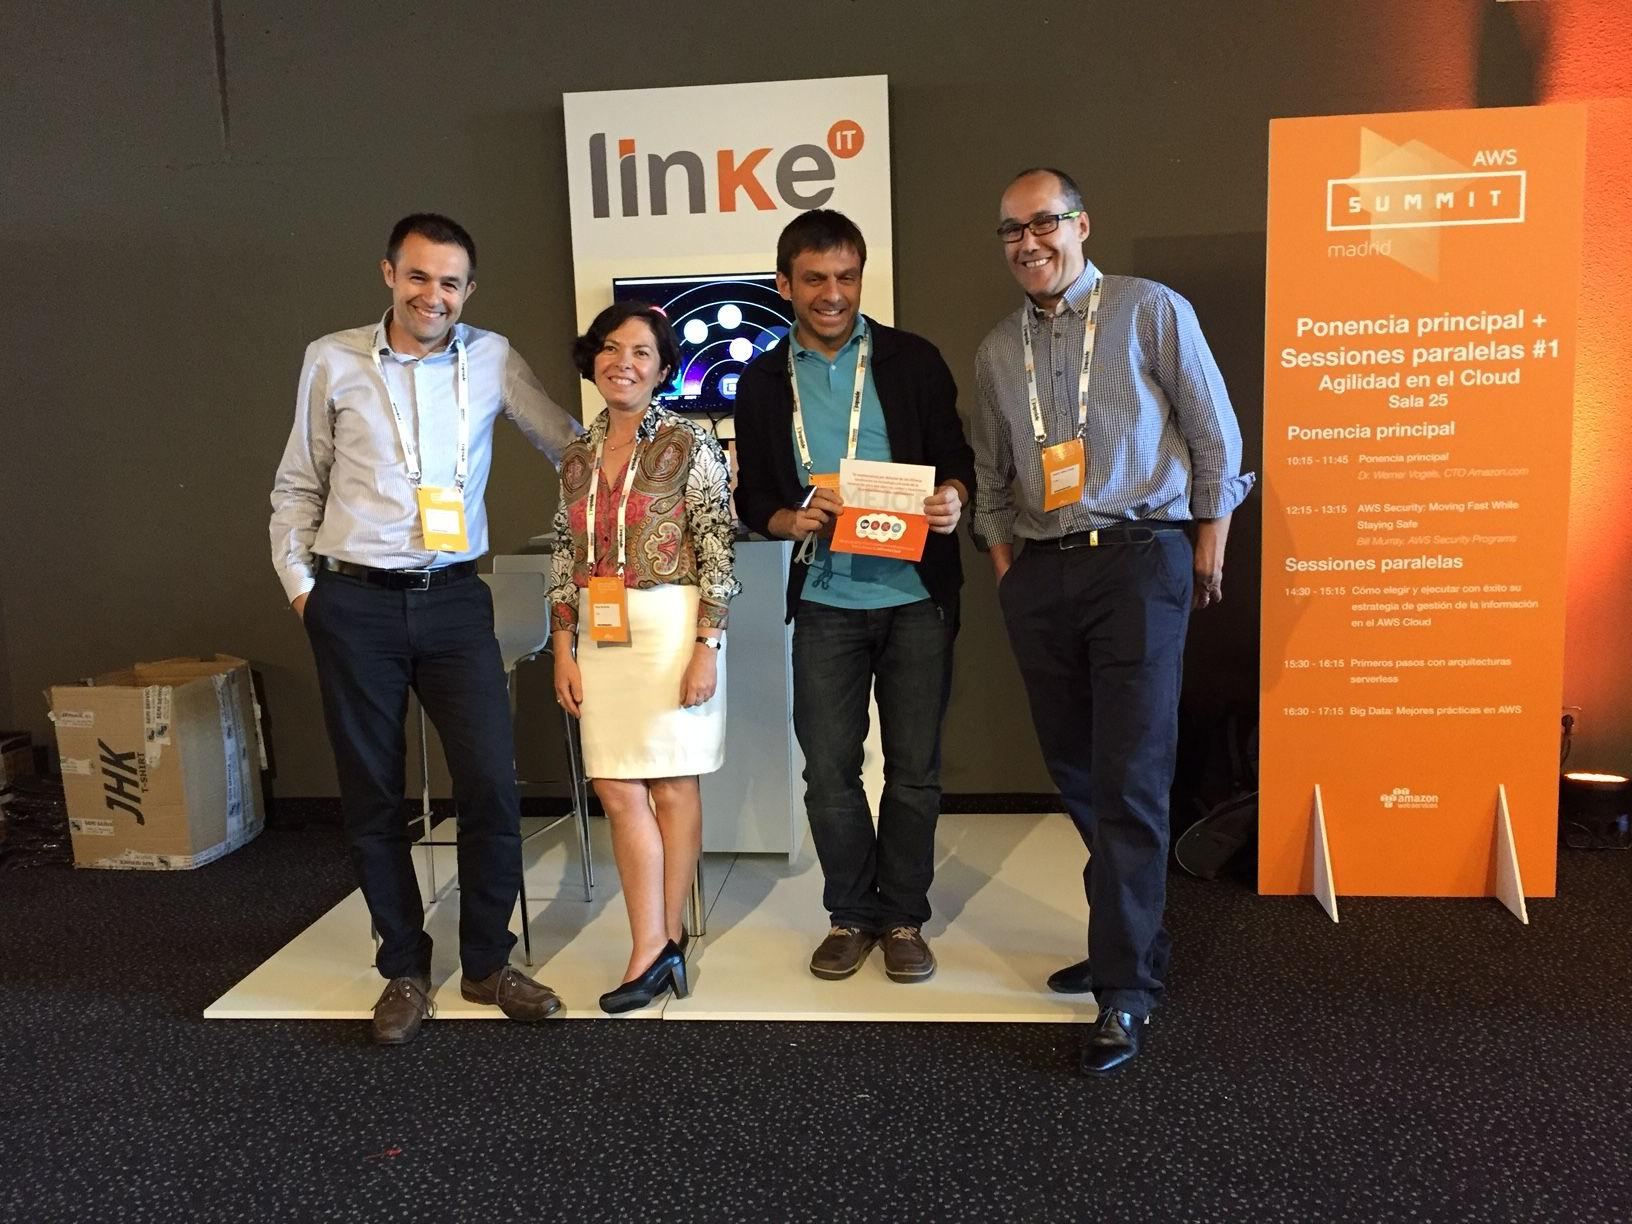 Linke-IT-AWS-Summit-Madrid-2016.jpg